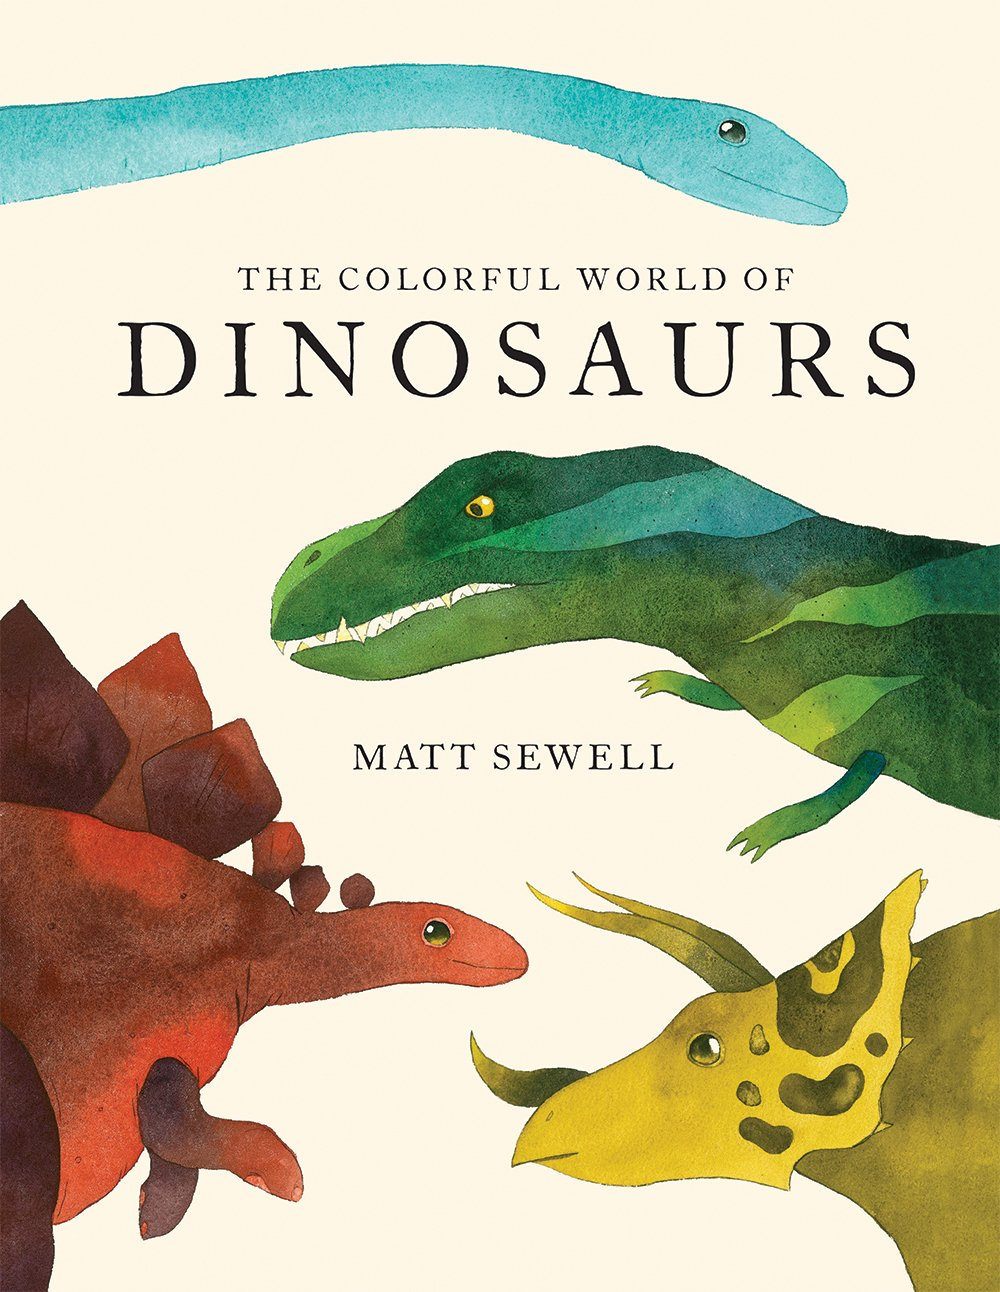 A book cover with four dinosaur heads on it.